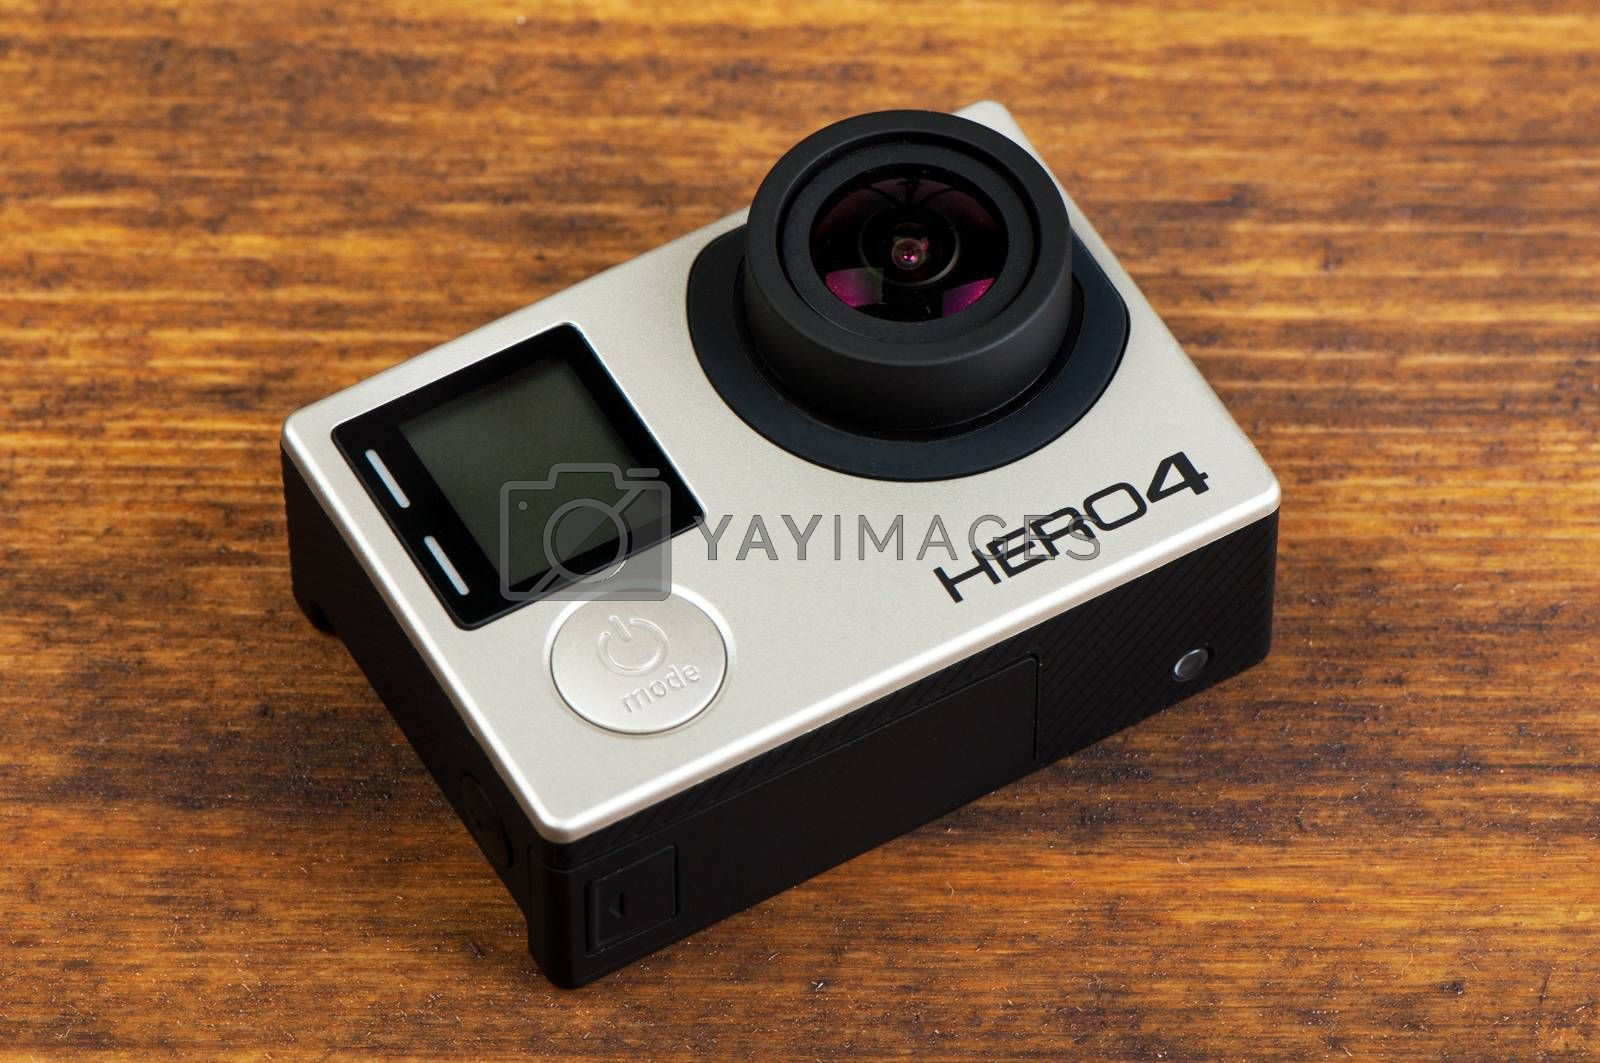 NOVI SAD, SERBIA - JUNE 19, 2016: GoPro Hero 4 Black waterproof action camera announced in september 2014 is able to capture 4k uhd footage, illustrative editorial